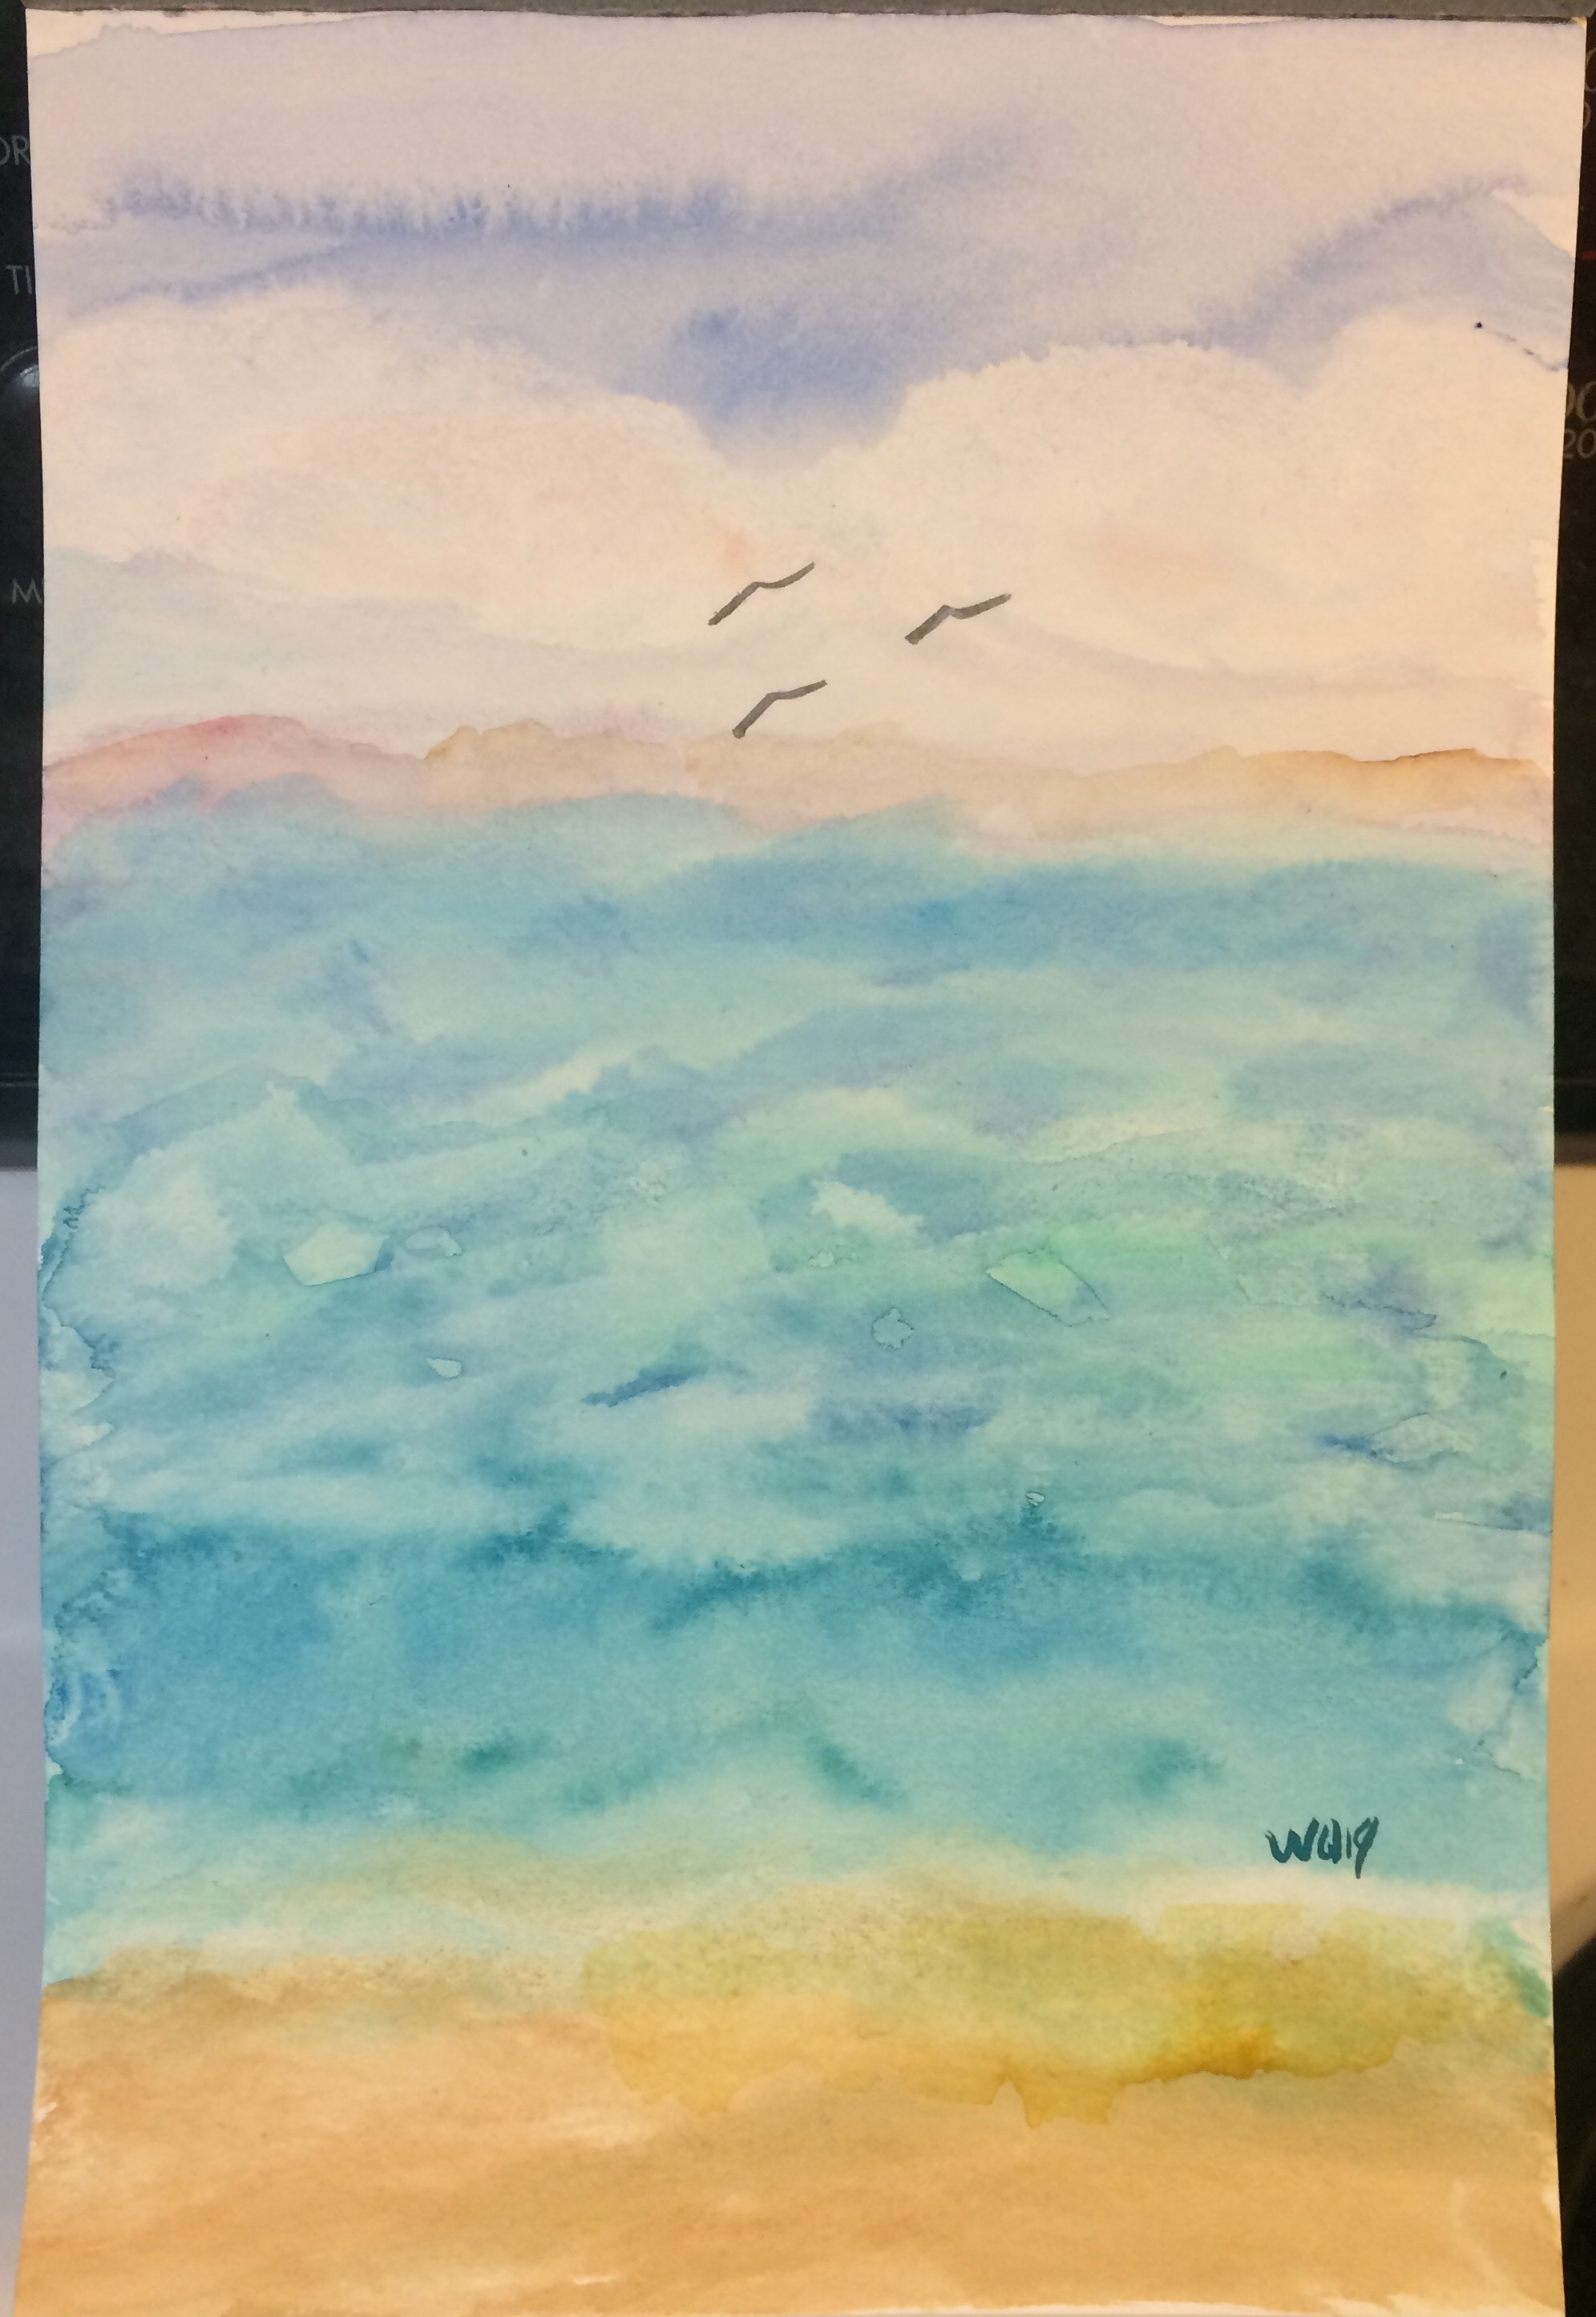 watercolour painting of sky, ocean and a small beach.